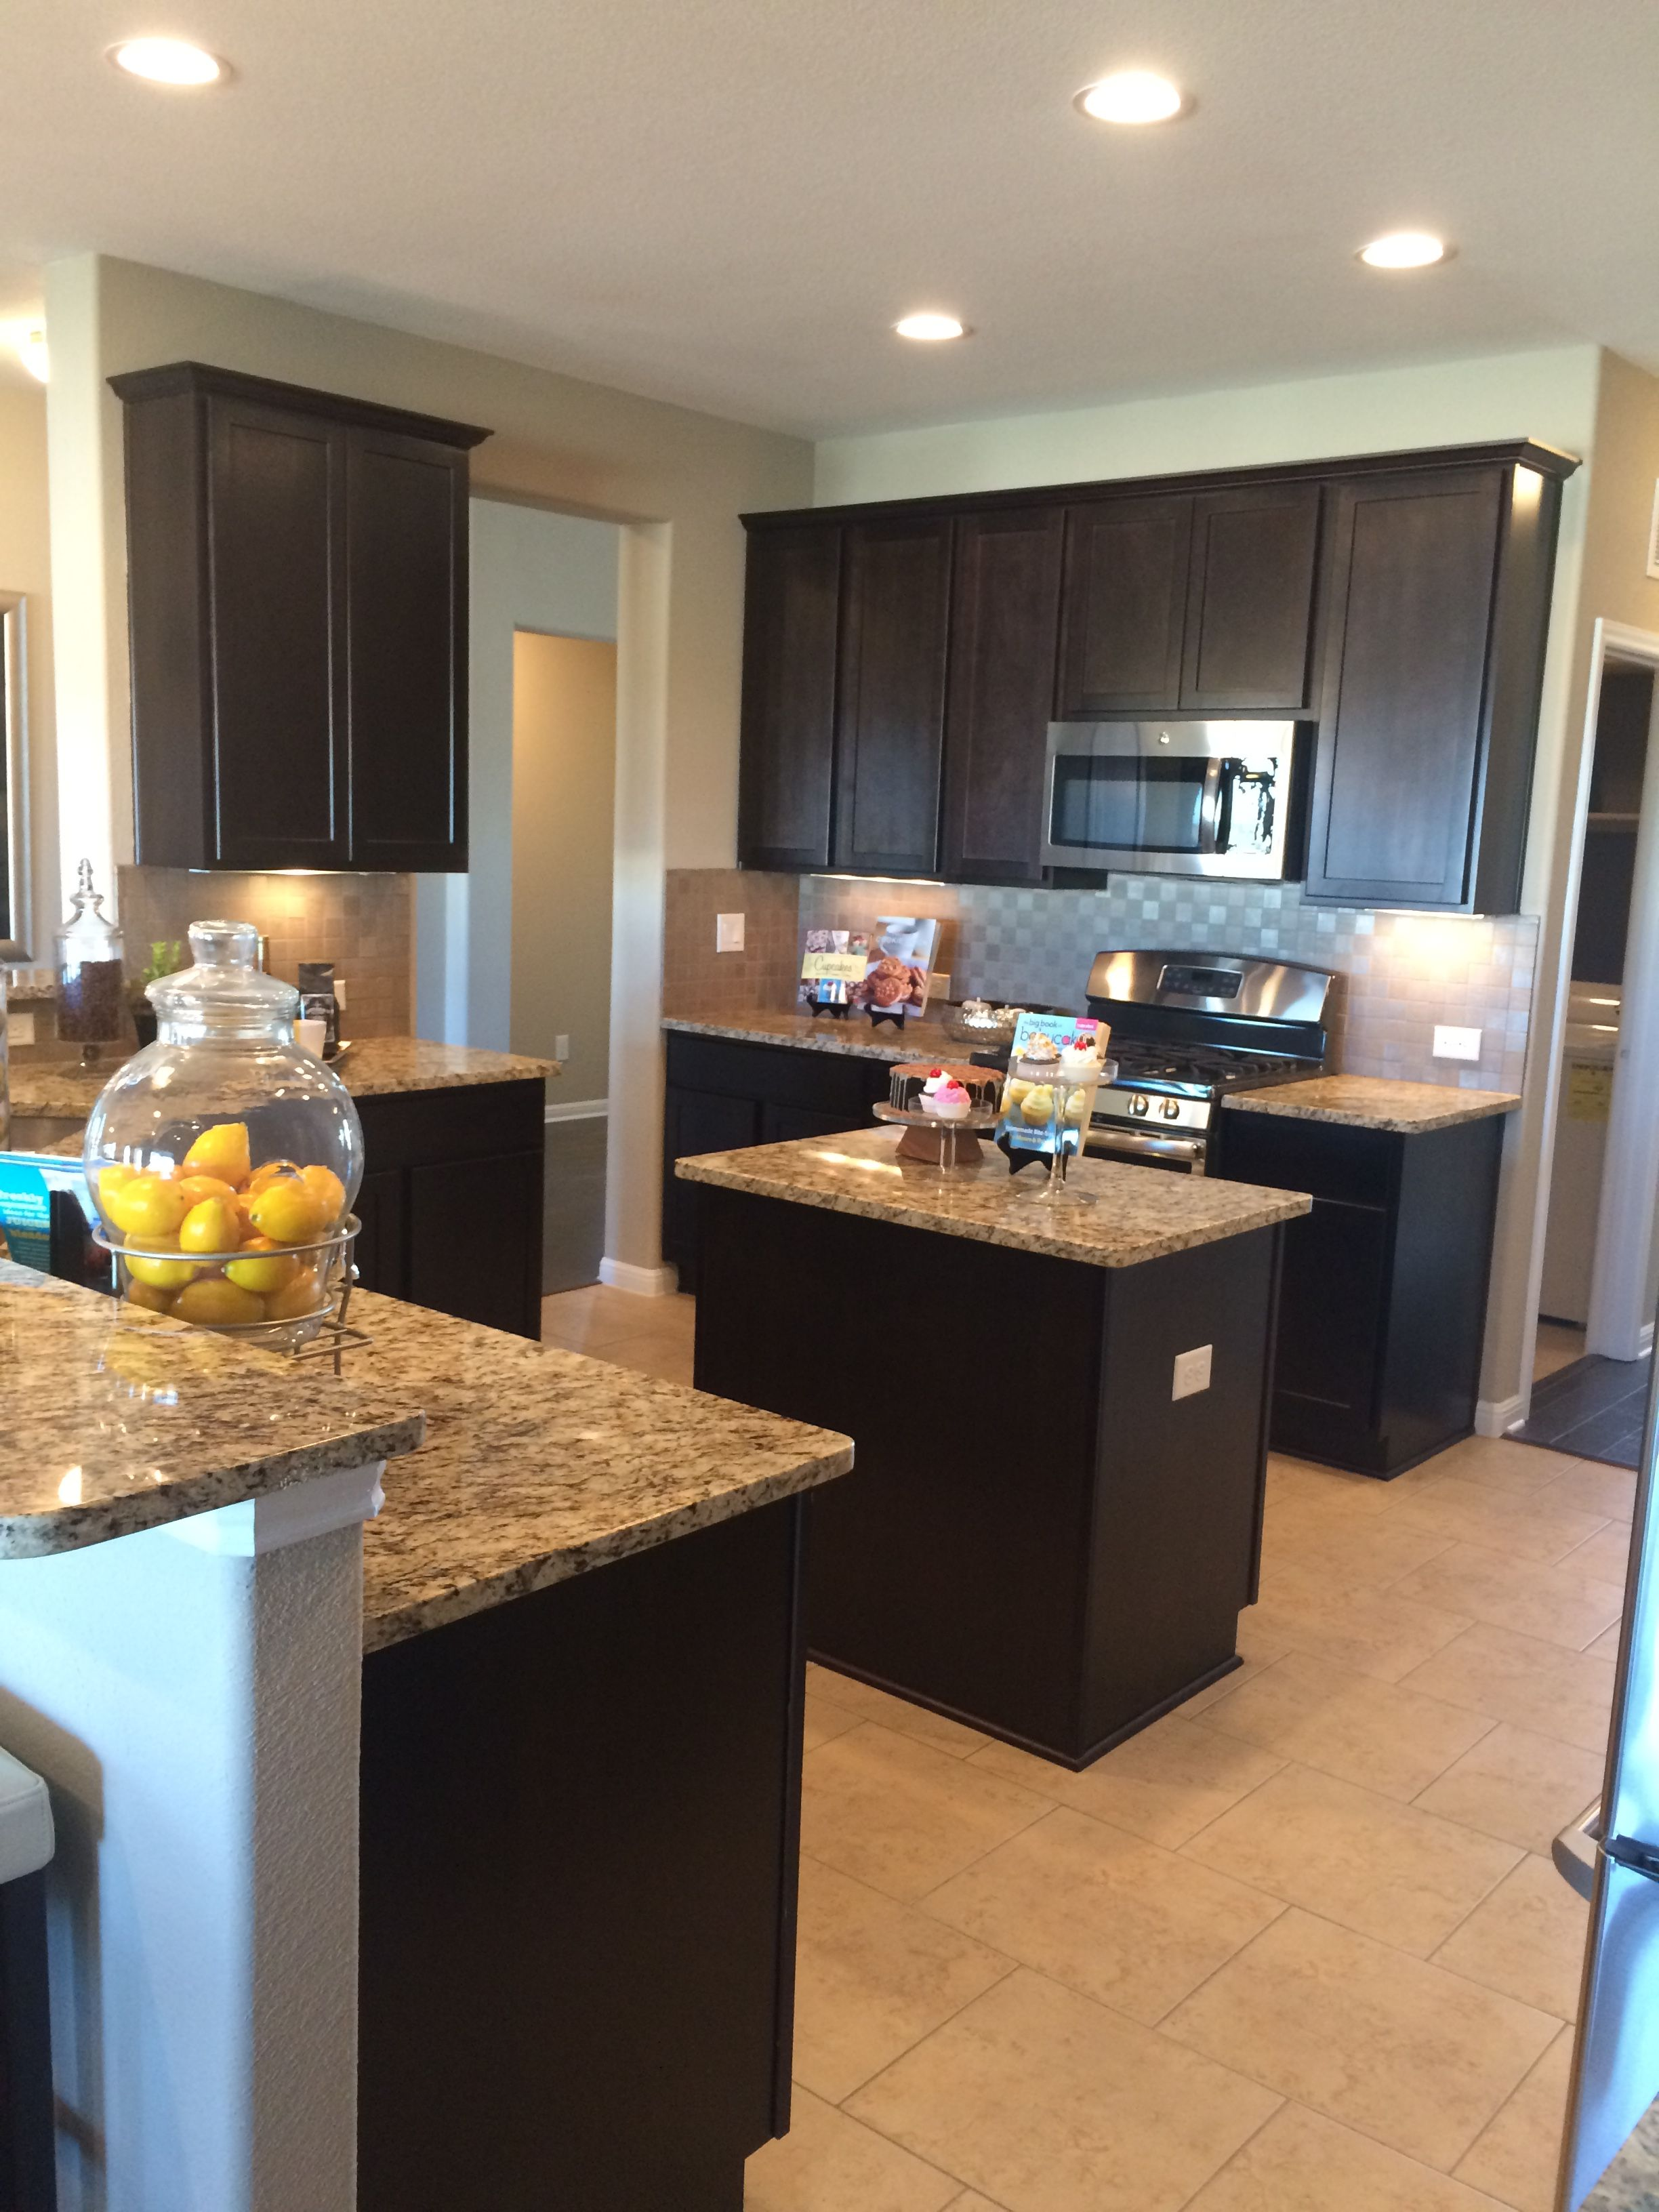 My Dream Kitchen This Picture Is From A Dr Horton New Construction Community Northside Meadow In Leander Tx Where My Cli Home Buying Kitchen Dream Kitchen